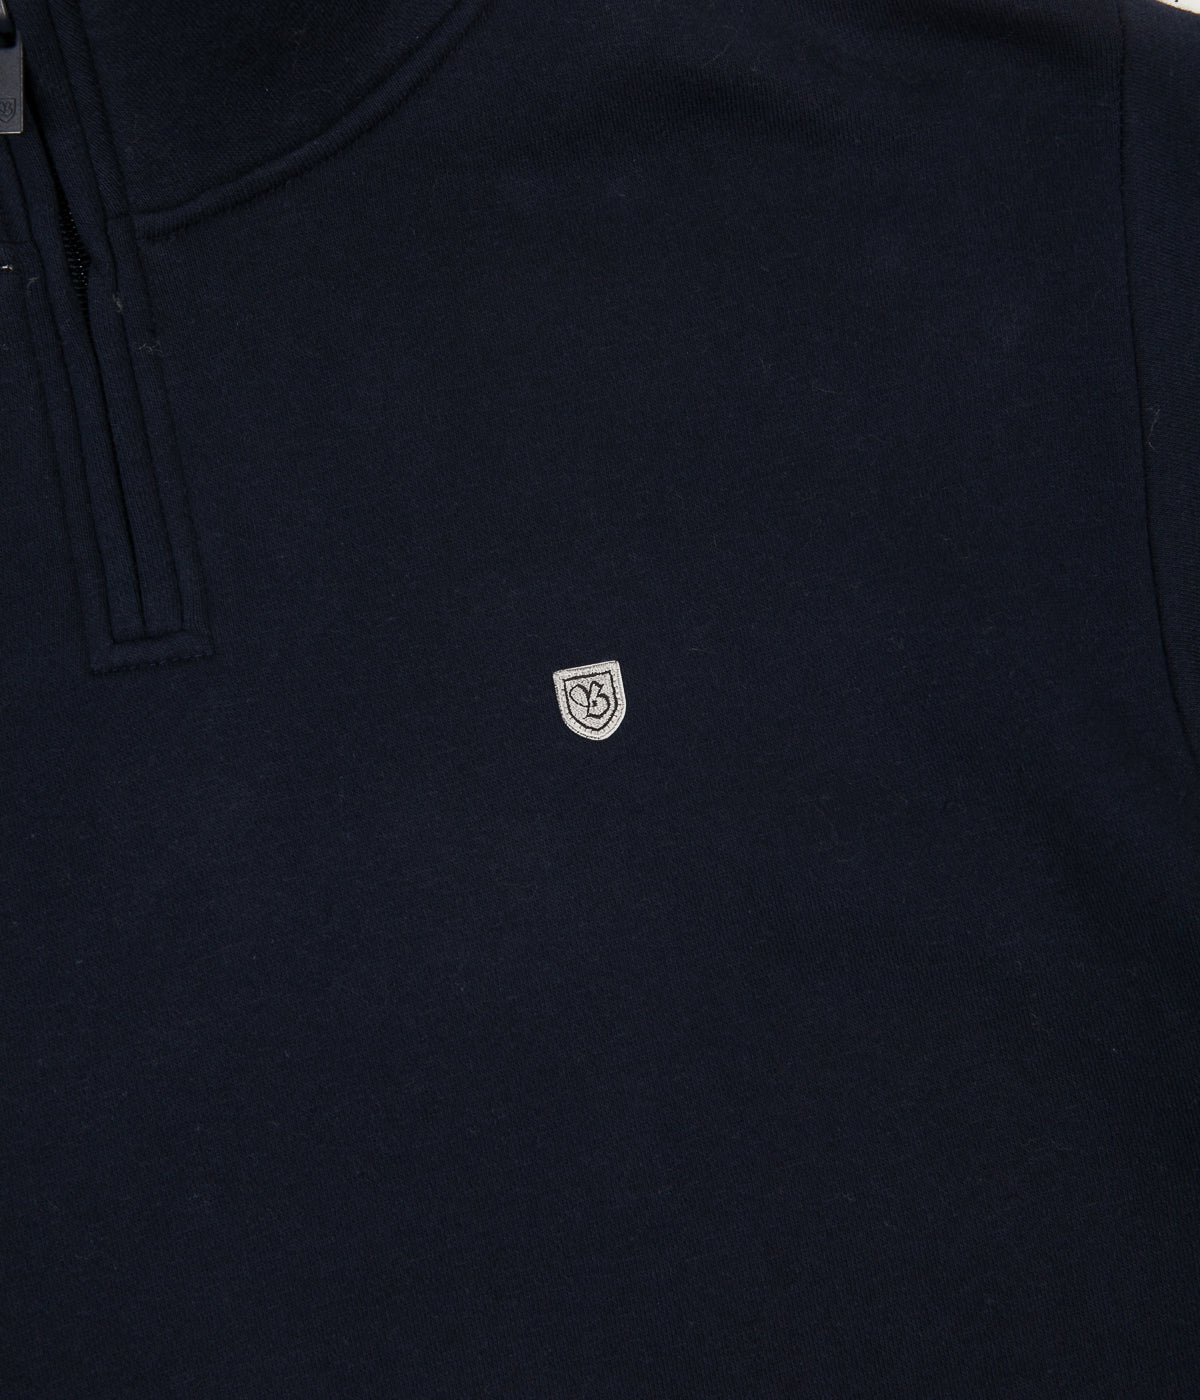 Brixton B-Shield II Intl 1/2 Zip Sweatshirt - Navy / Heather Grey